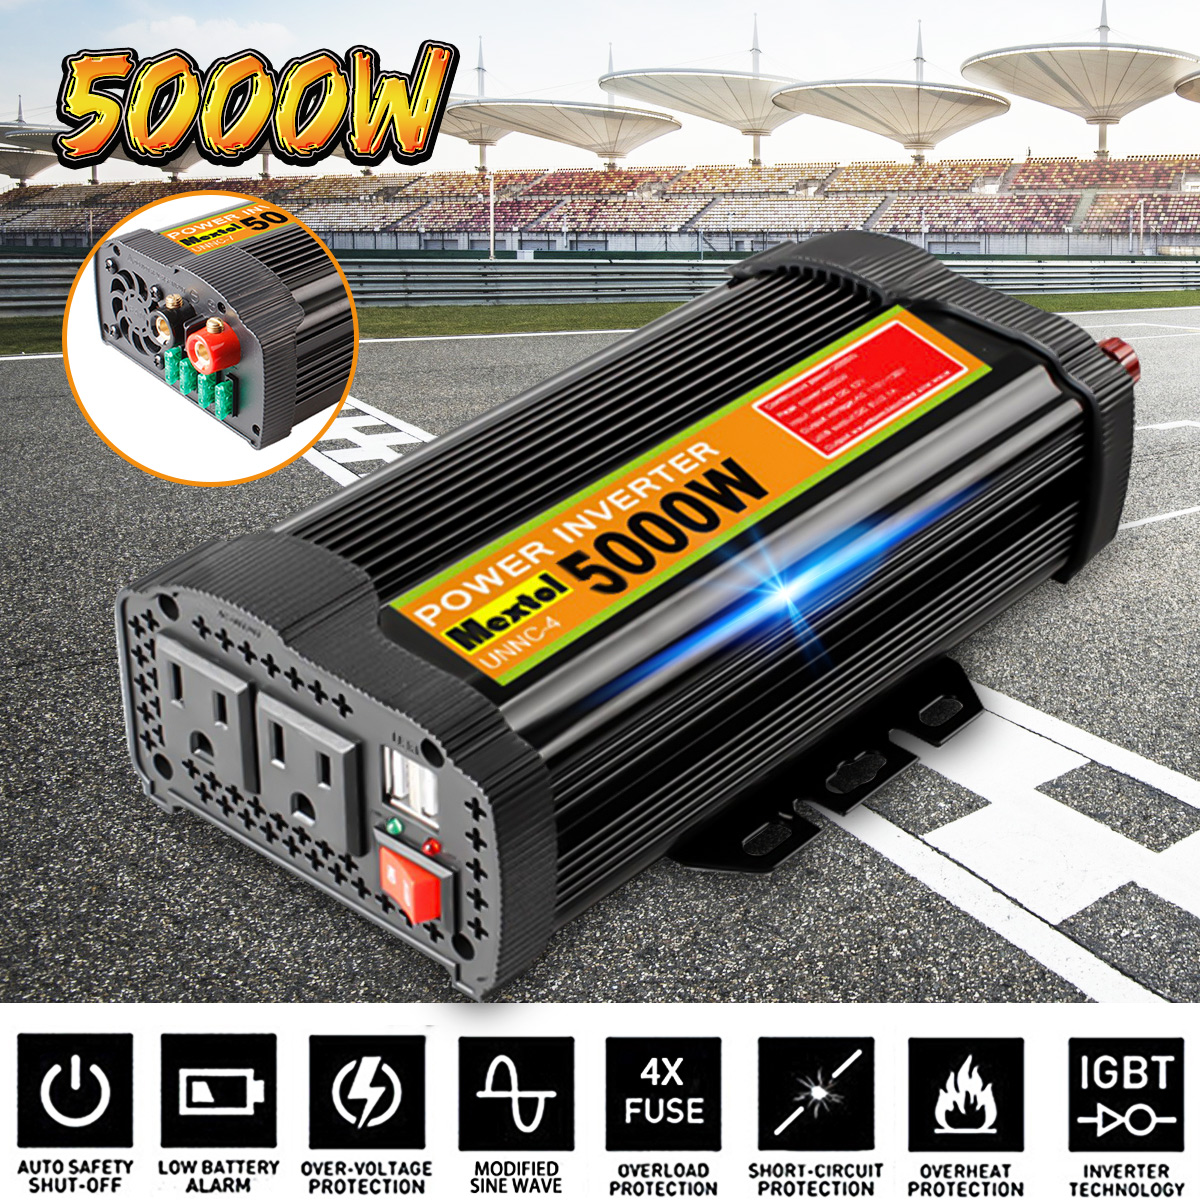 USB Inverter 12V 110V 10000W Peaks 5000W Auto Modified Sine Wave Voltage Transformer Solar Power Inverter Converter Car ChargeUSB Inverter 12V 110V 10000W Peaks 5000W Auto Modified Sine Wave Voltage Transformer Solar Power Inverter Converter Car Charge